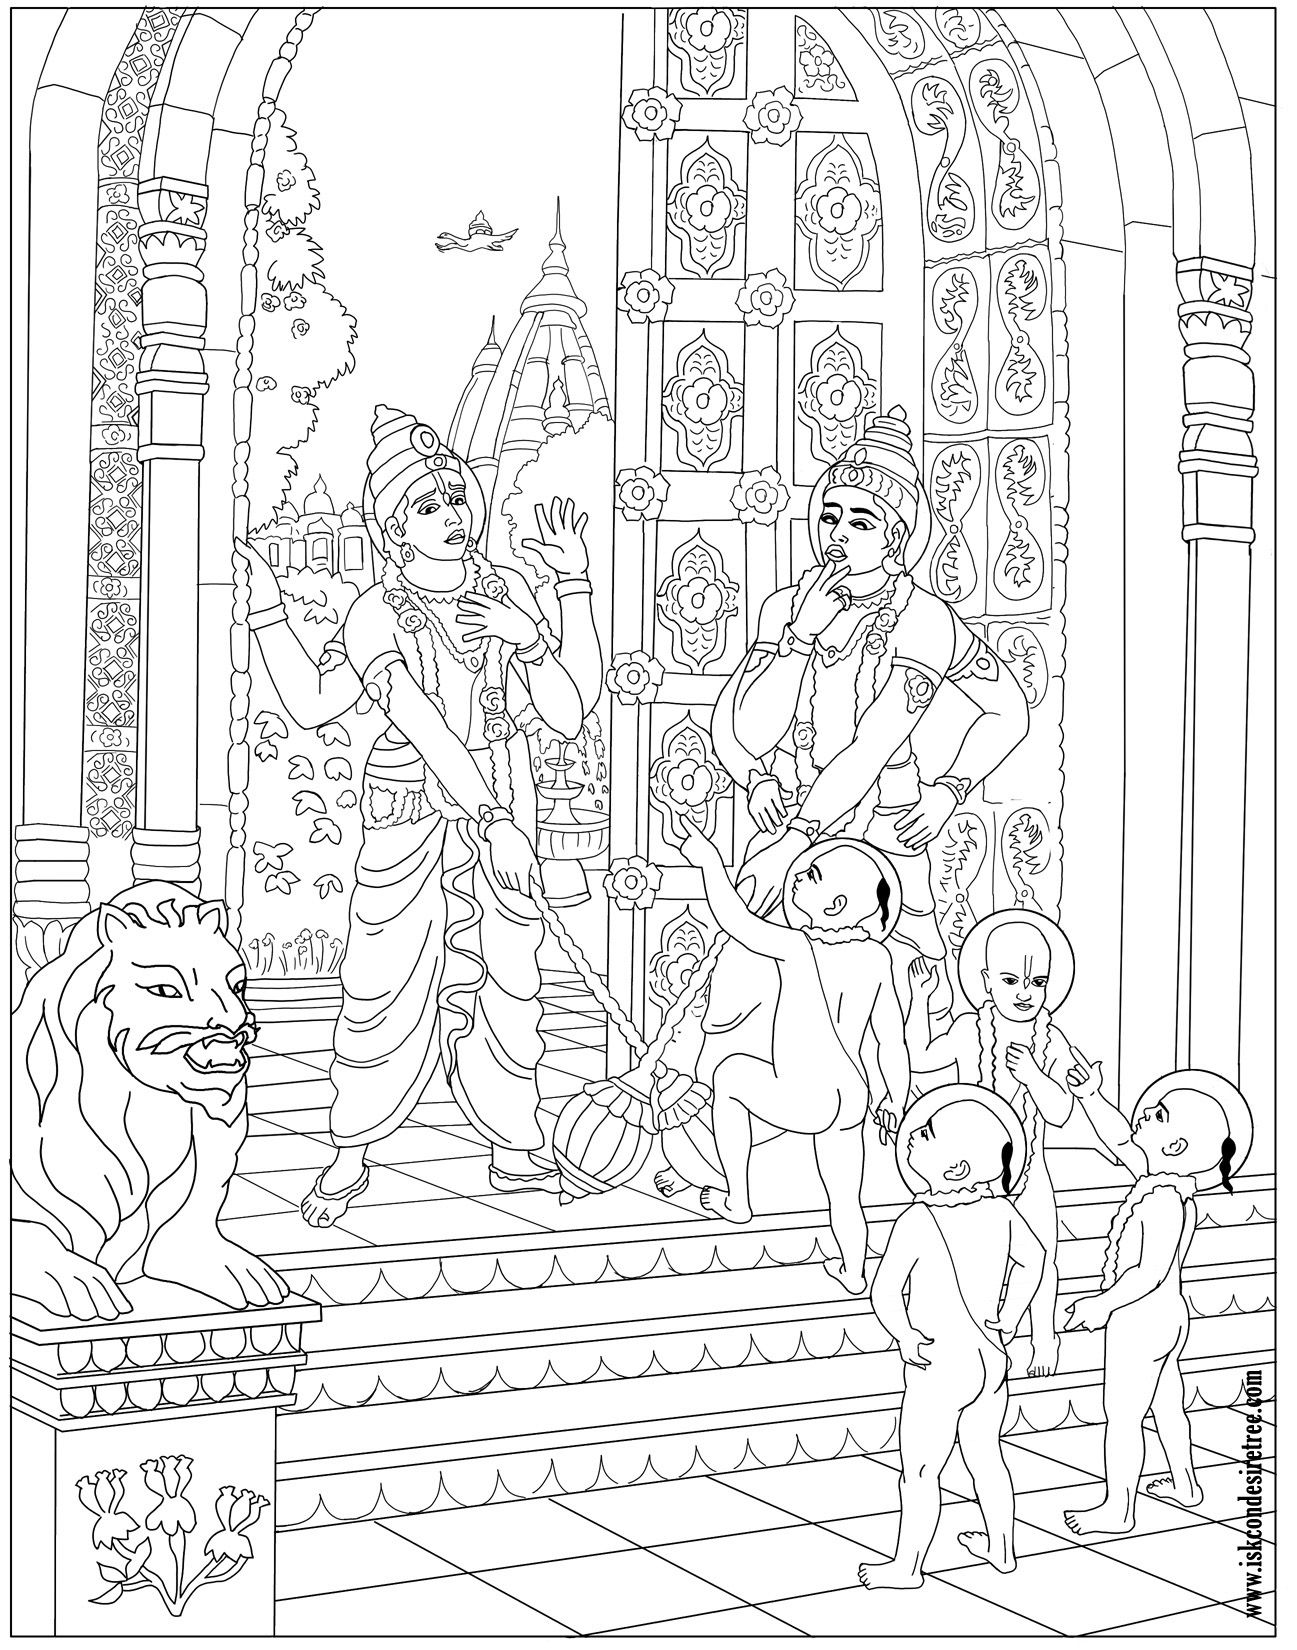 krishna coloring google search adult coloring pages on coloring krishna art - Baby Krishna Images Coloring Pages